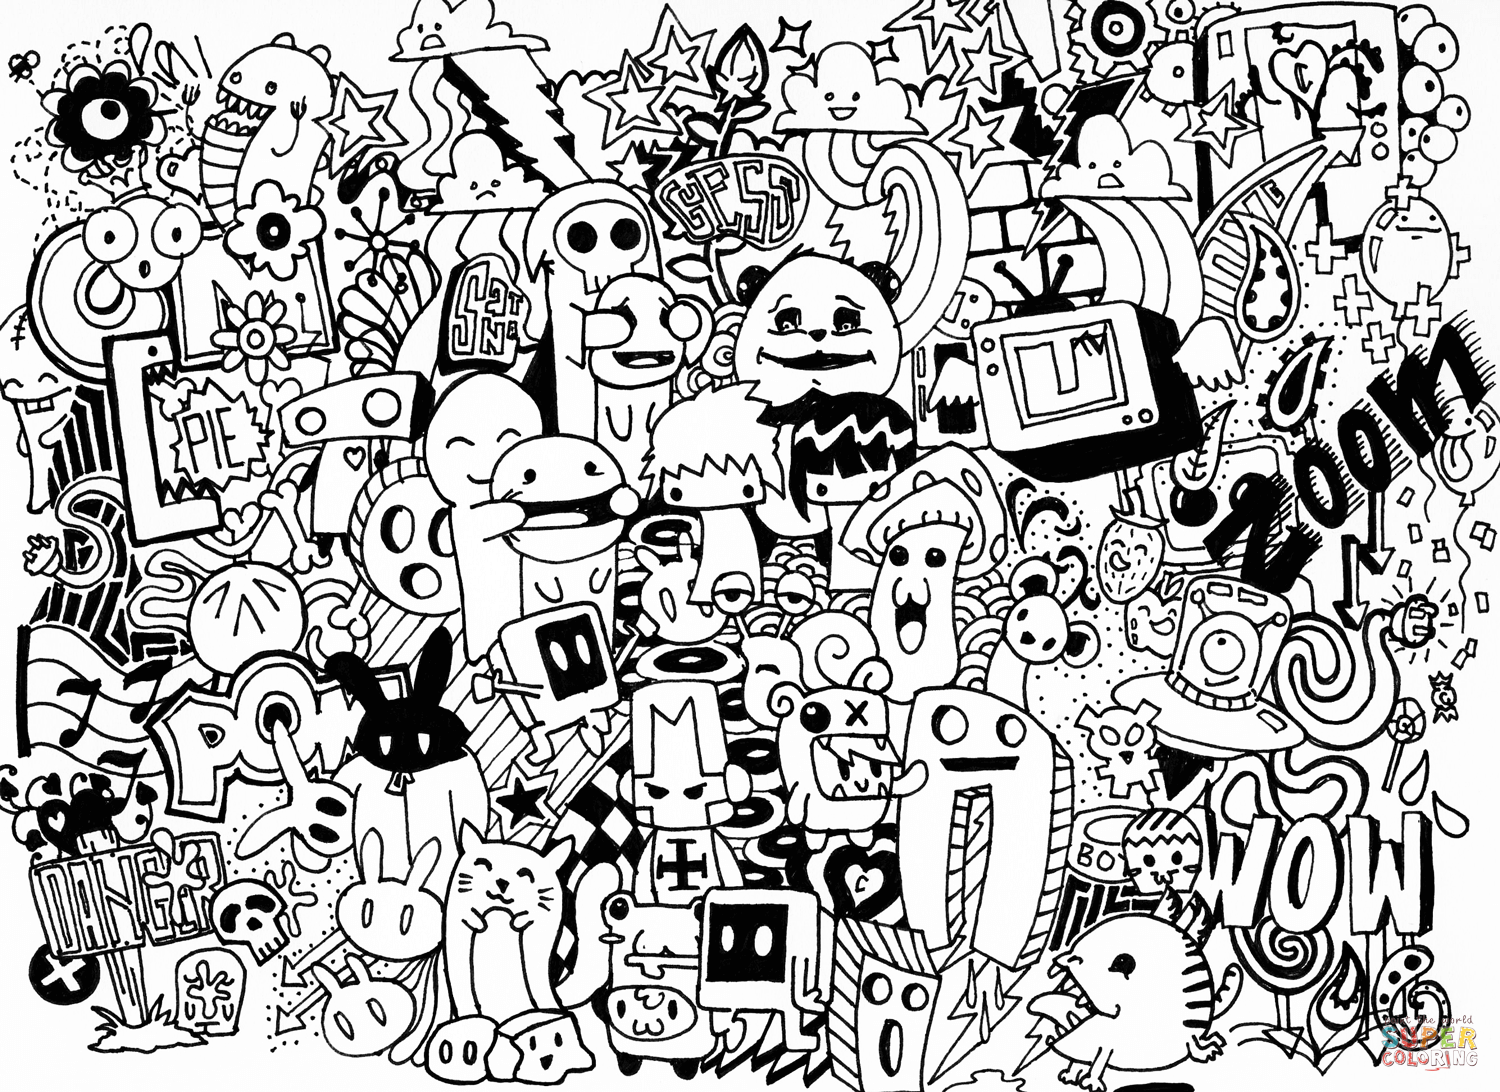 free doodle art to print and color doodle art to print for free doodle art kids coloring pages and print free to art doodle color